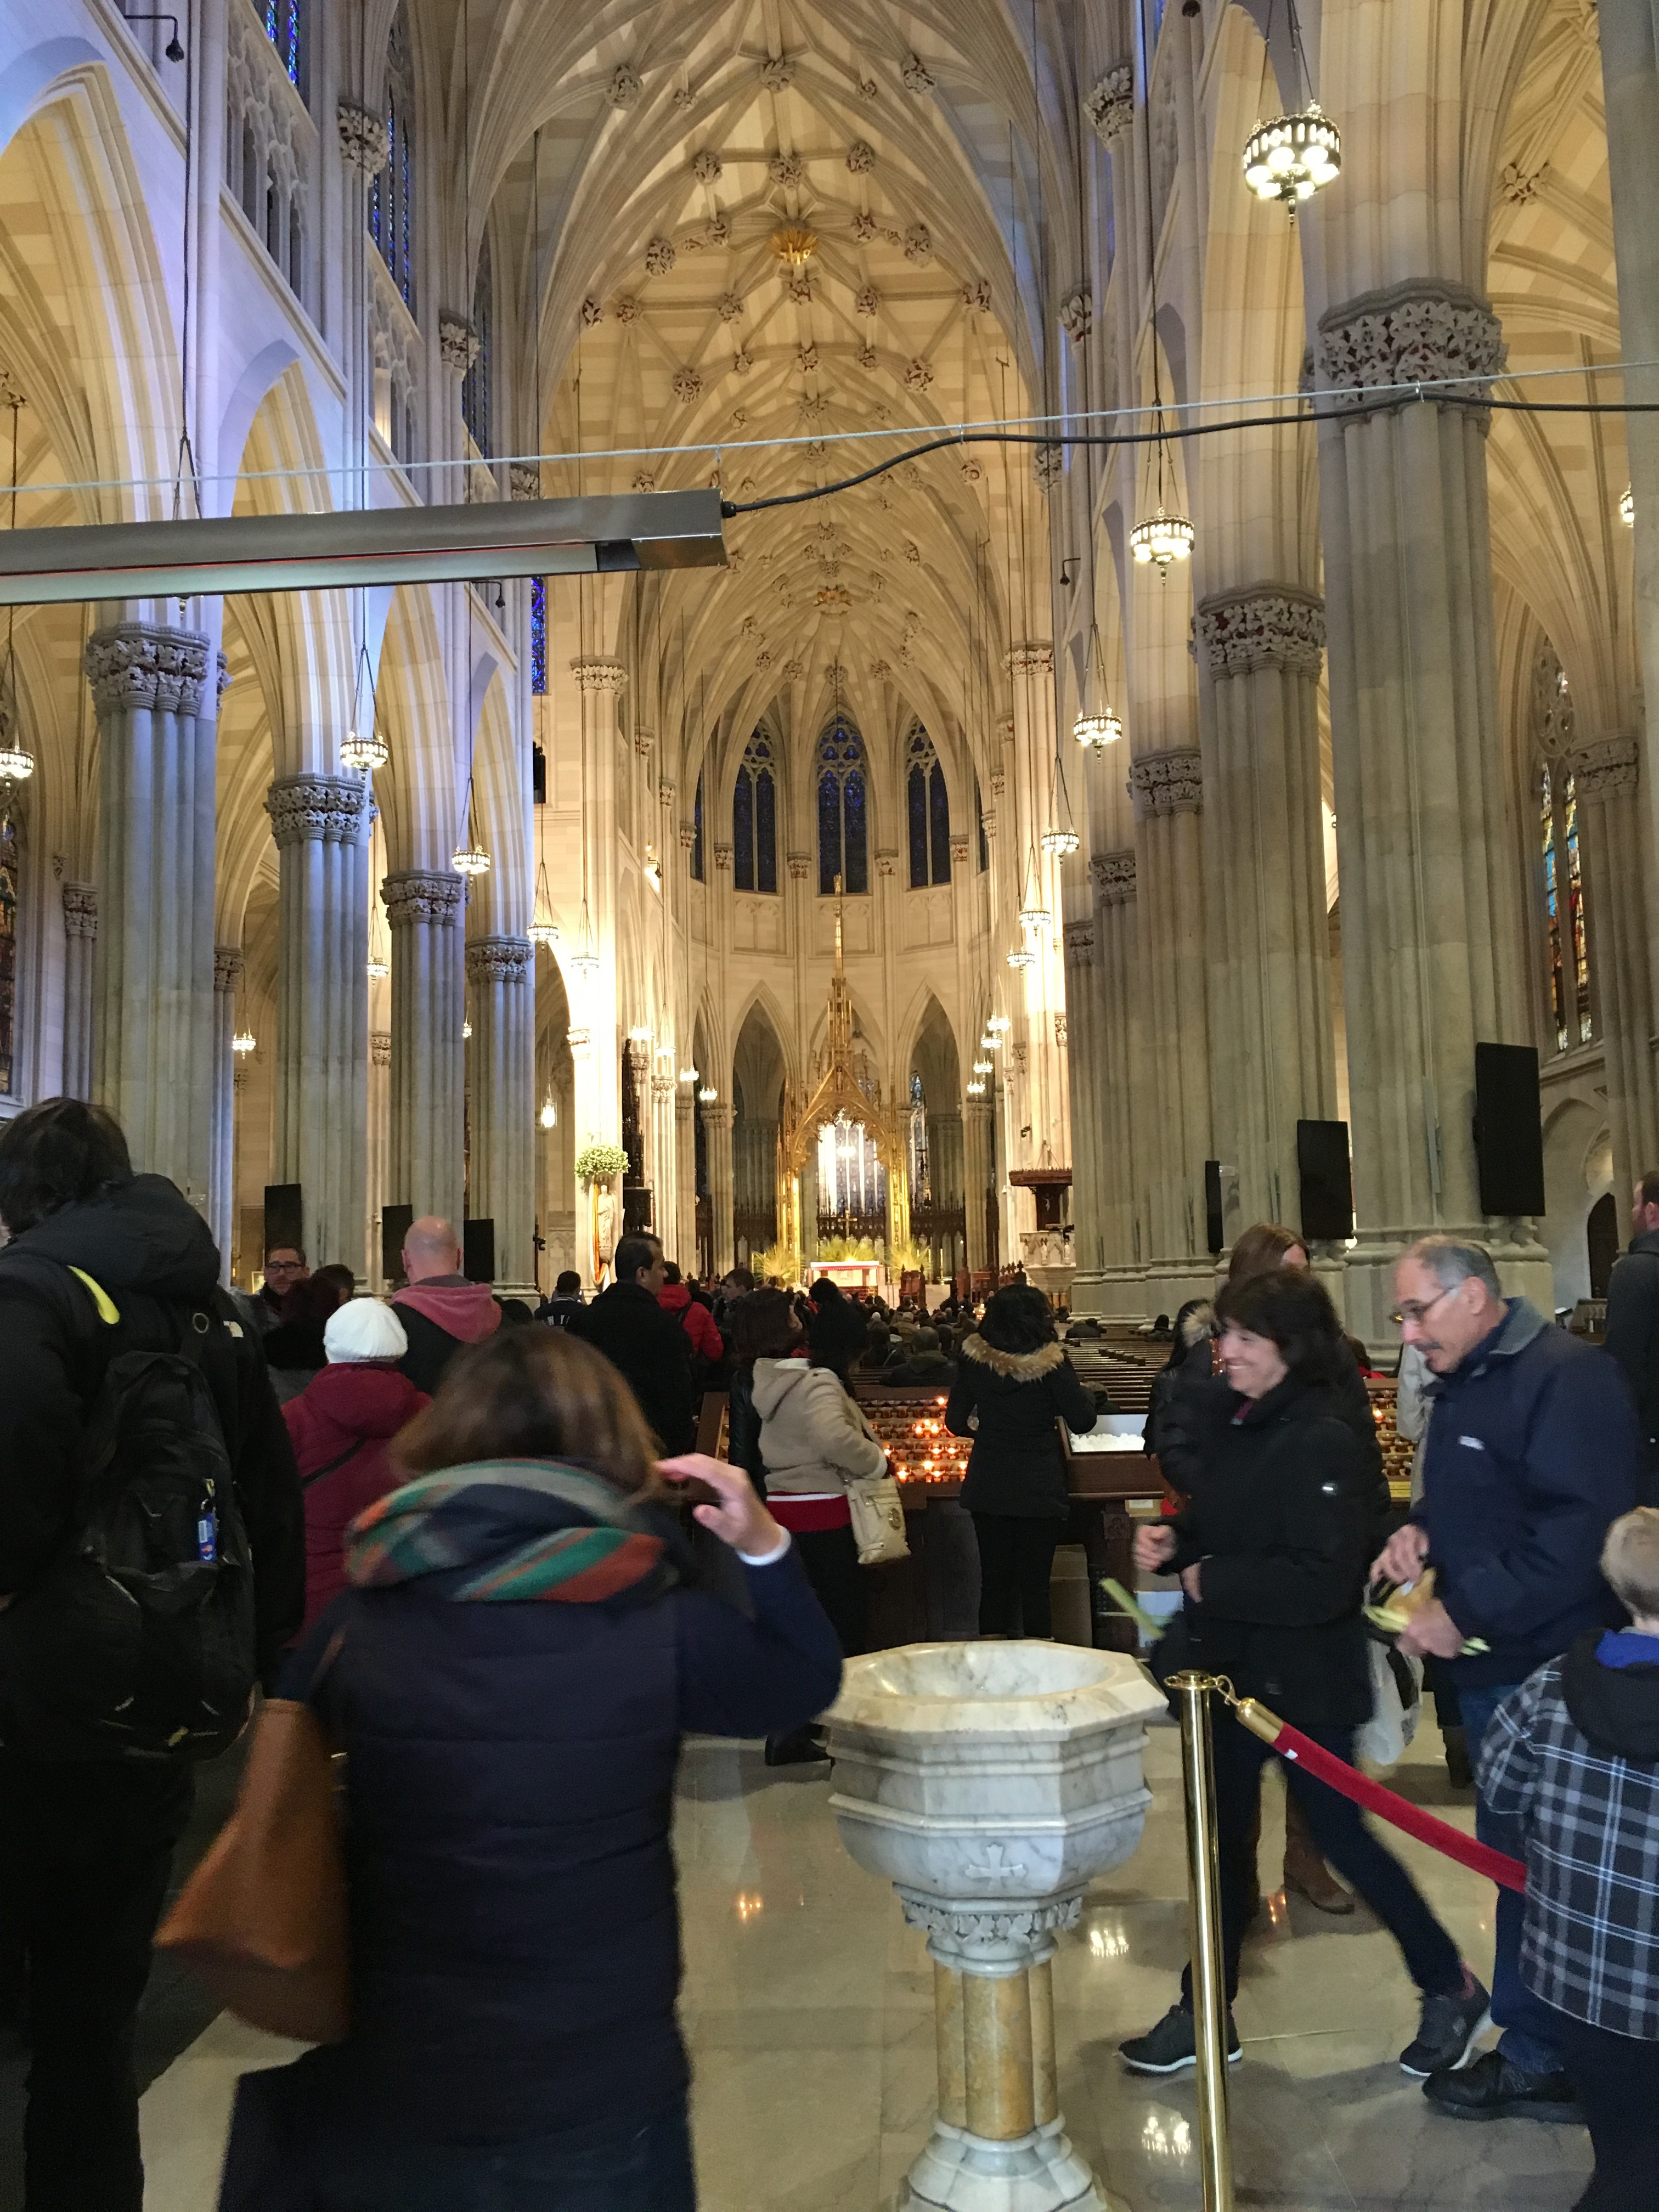 The interior of the St. Patricks Cathedral. The monumentality is on full display upon entering, with its grand arcades and groined vaults. Even today, people from around the world come to see the church.